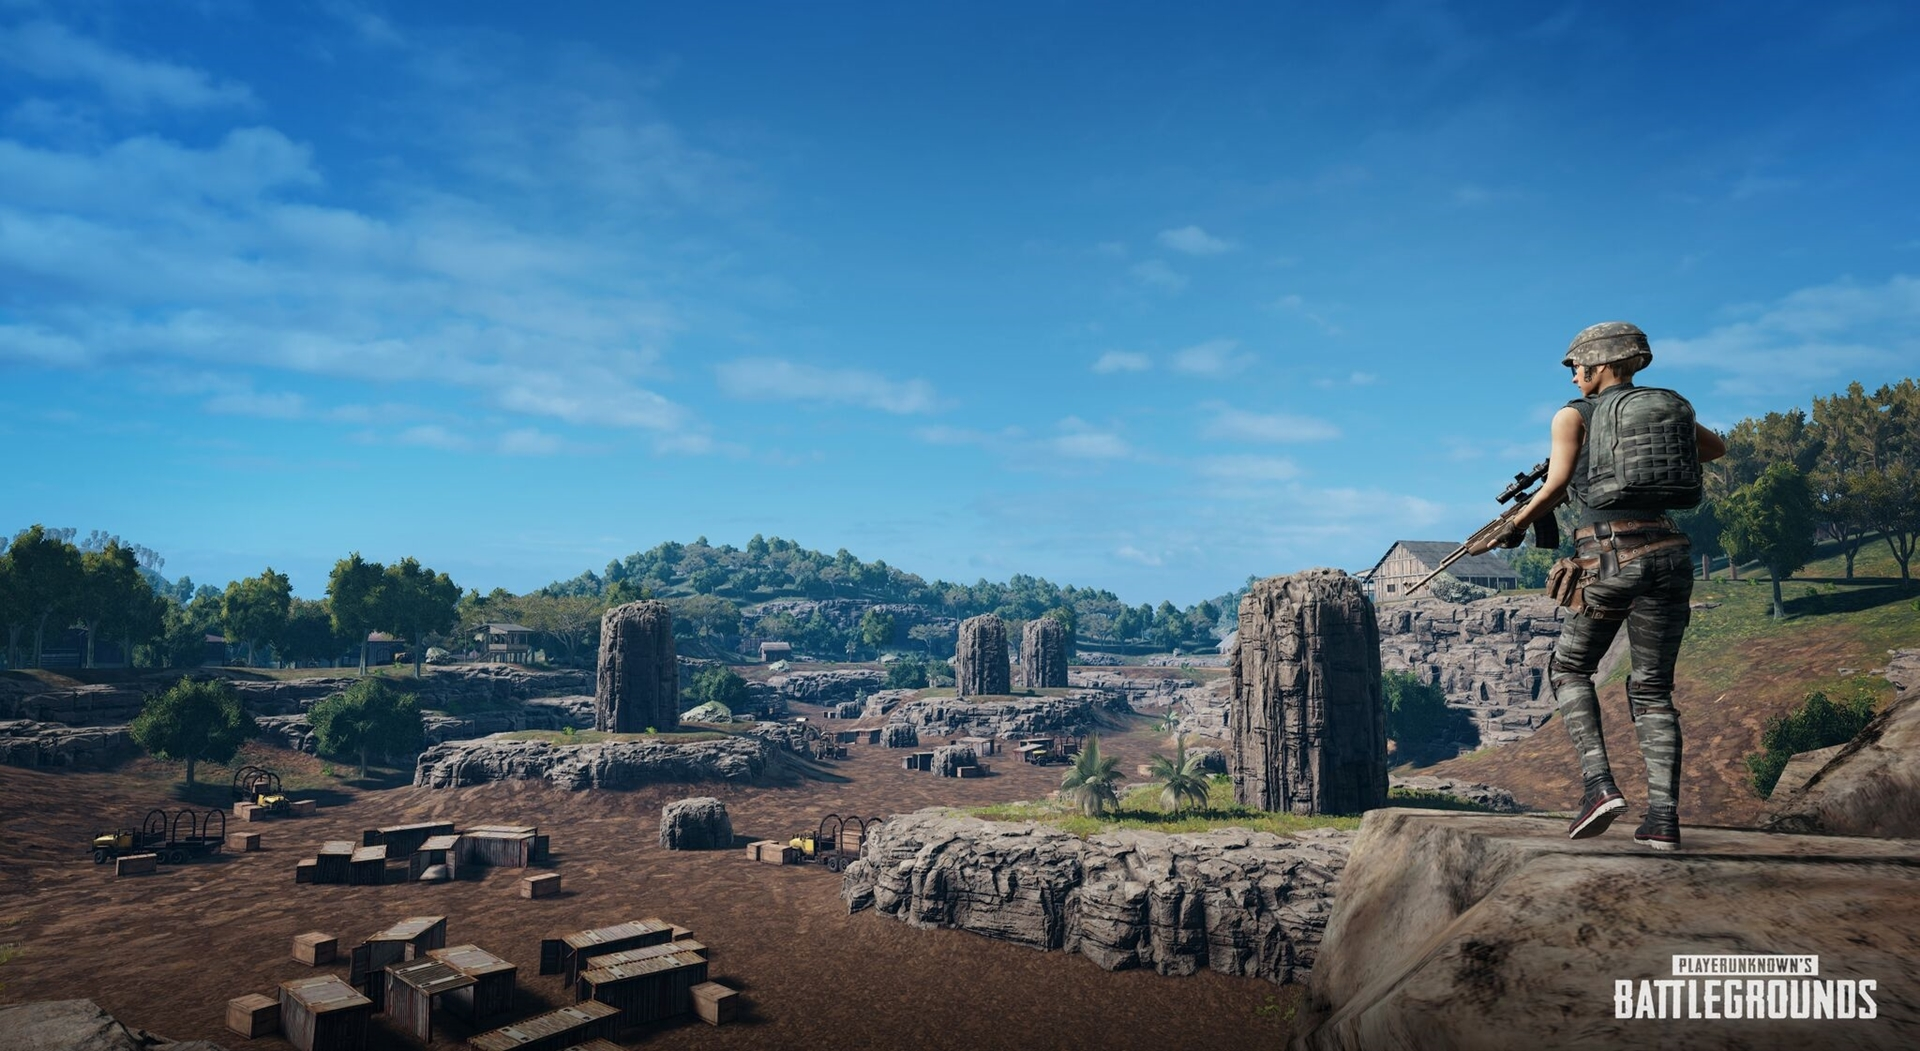 Pubg Sanhok Wallpaper 4k: PUBG Releases Patch Notes For Round 2 Of Savage Playtest